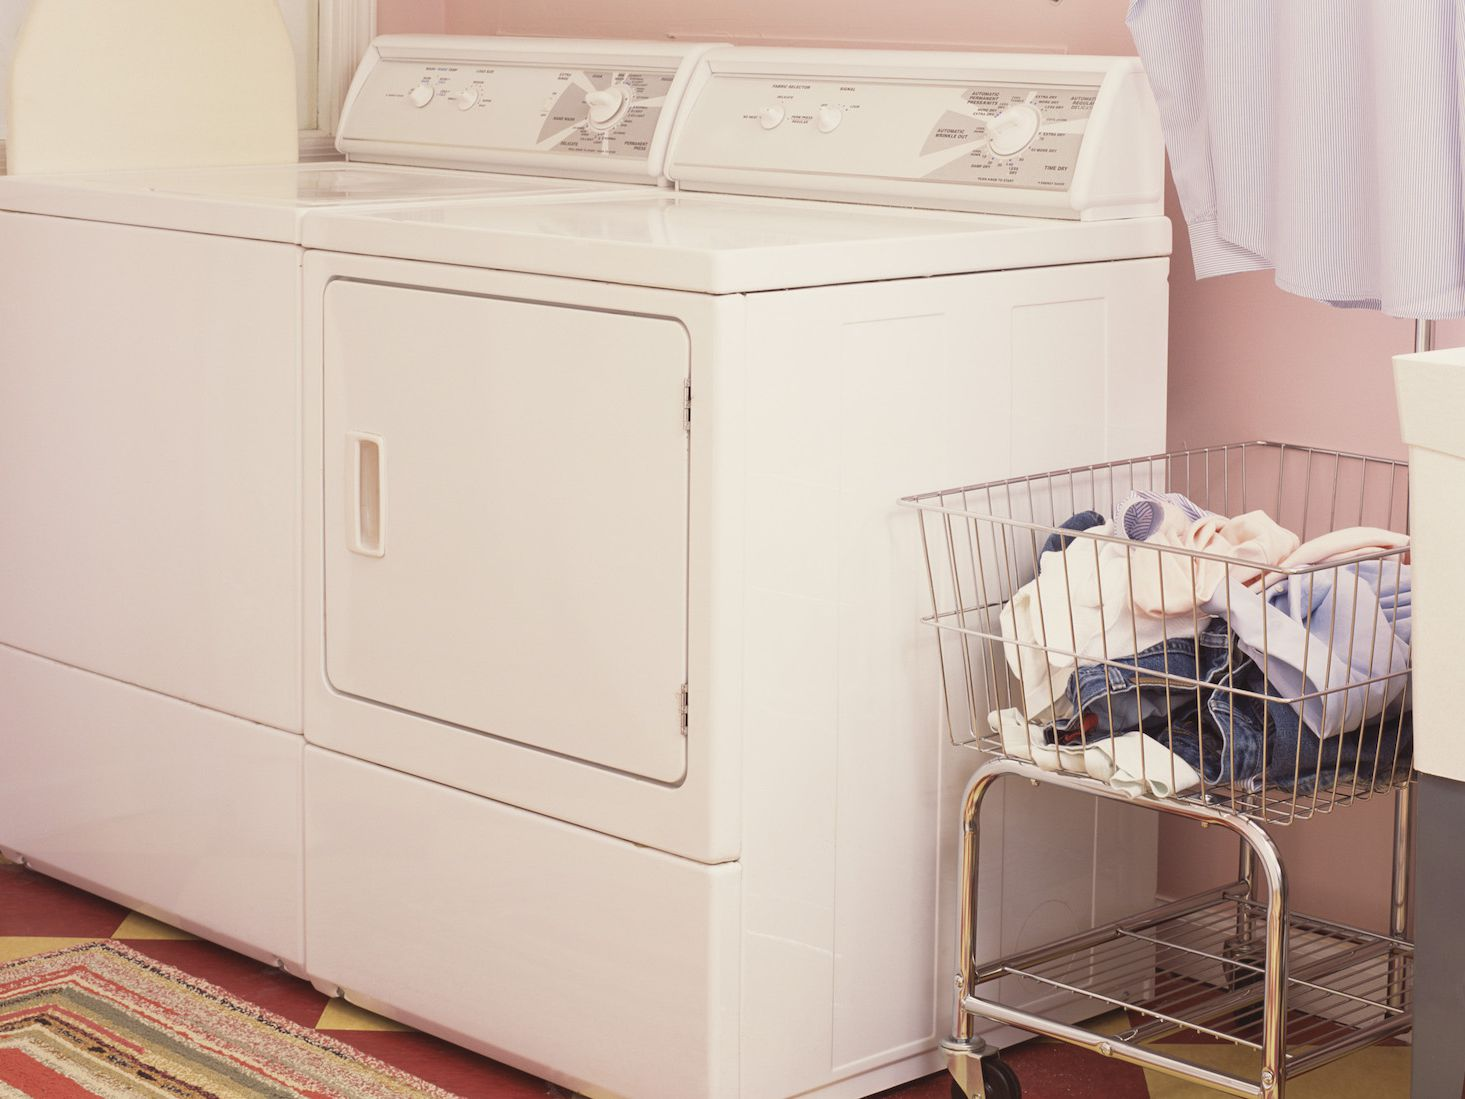 How Much Does It Cost To Add A Laundry Room